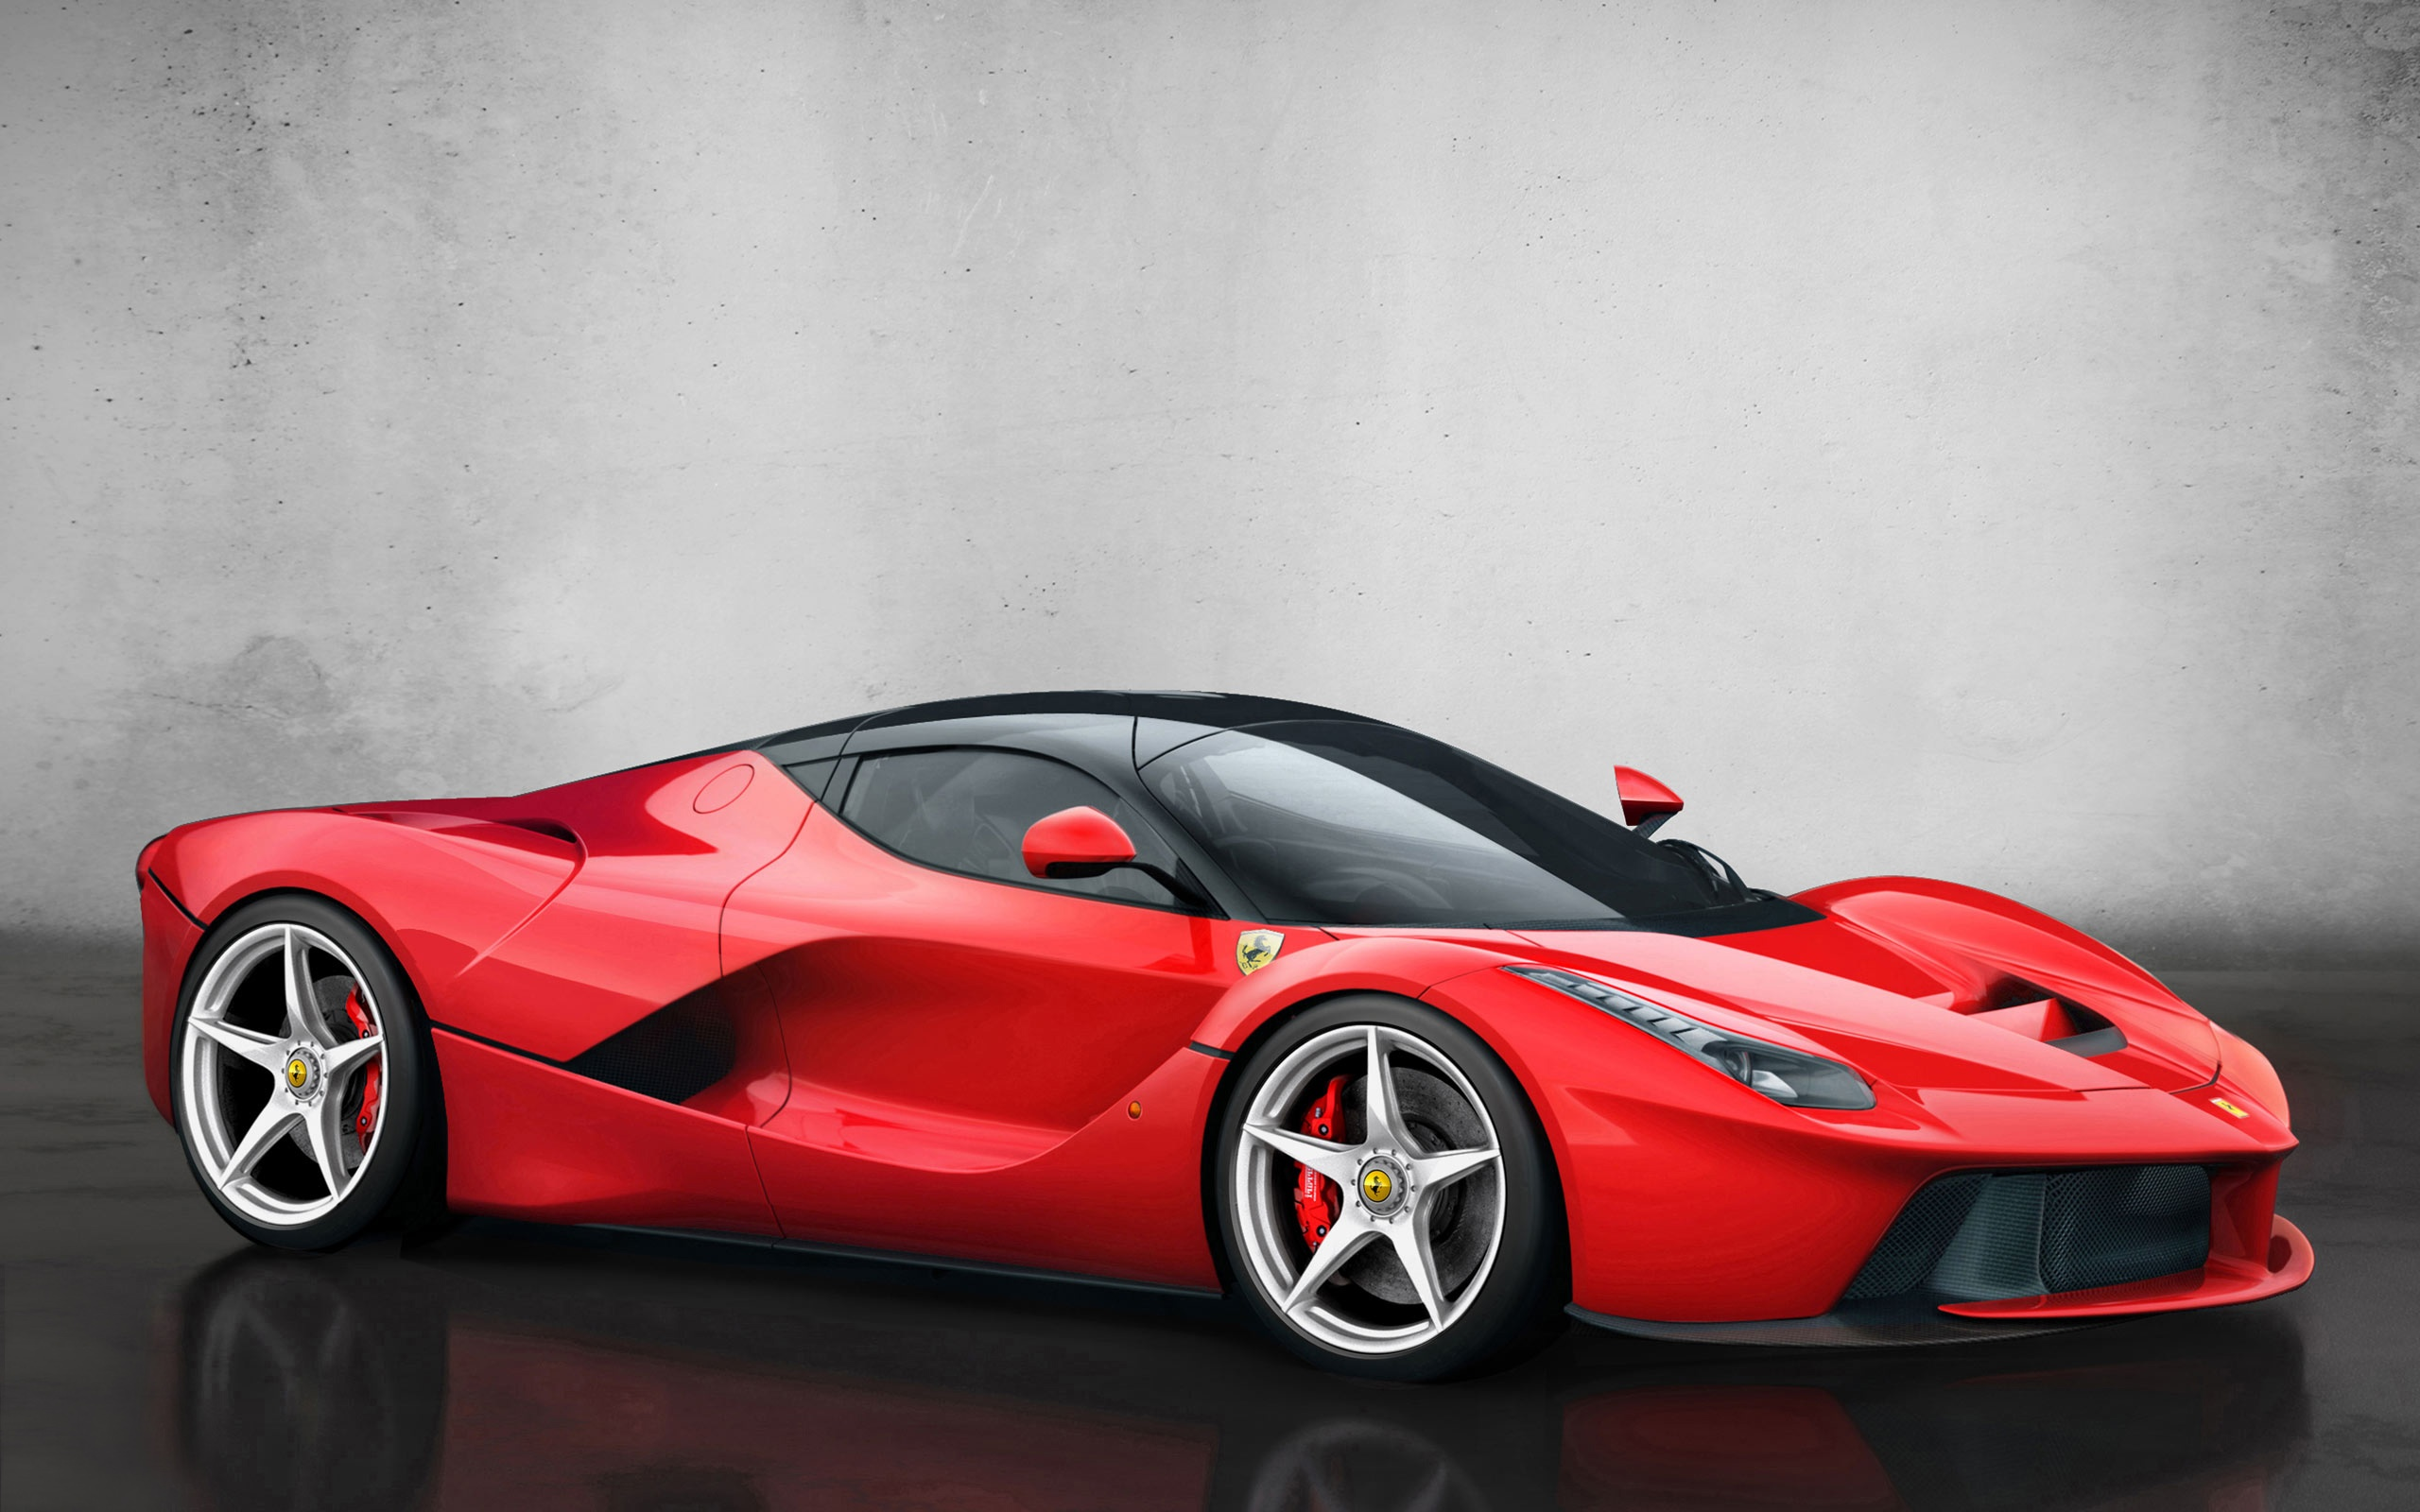 ferrari laferrari wallpapers high quality download free. Black Bedroom Furniture Sets. Home Design Ideas